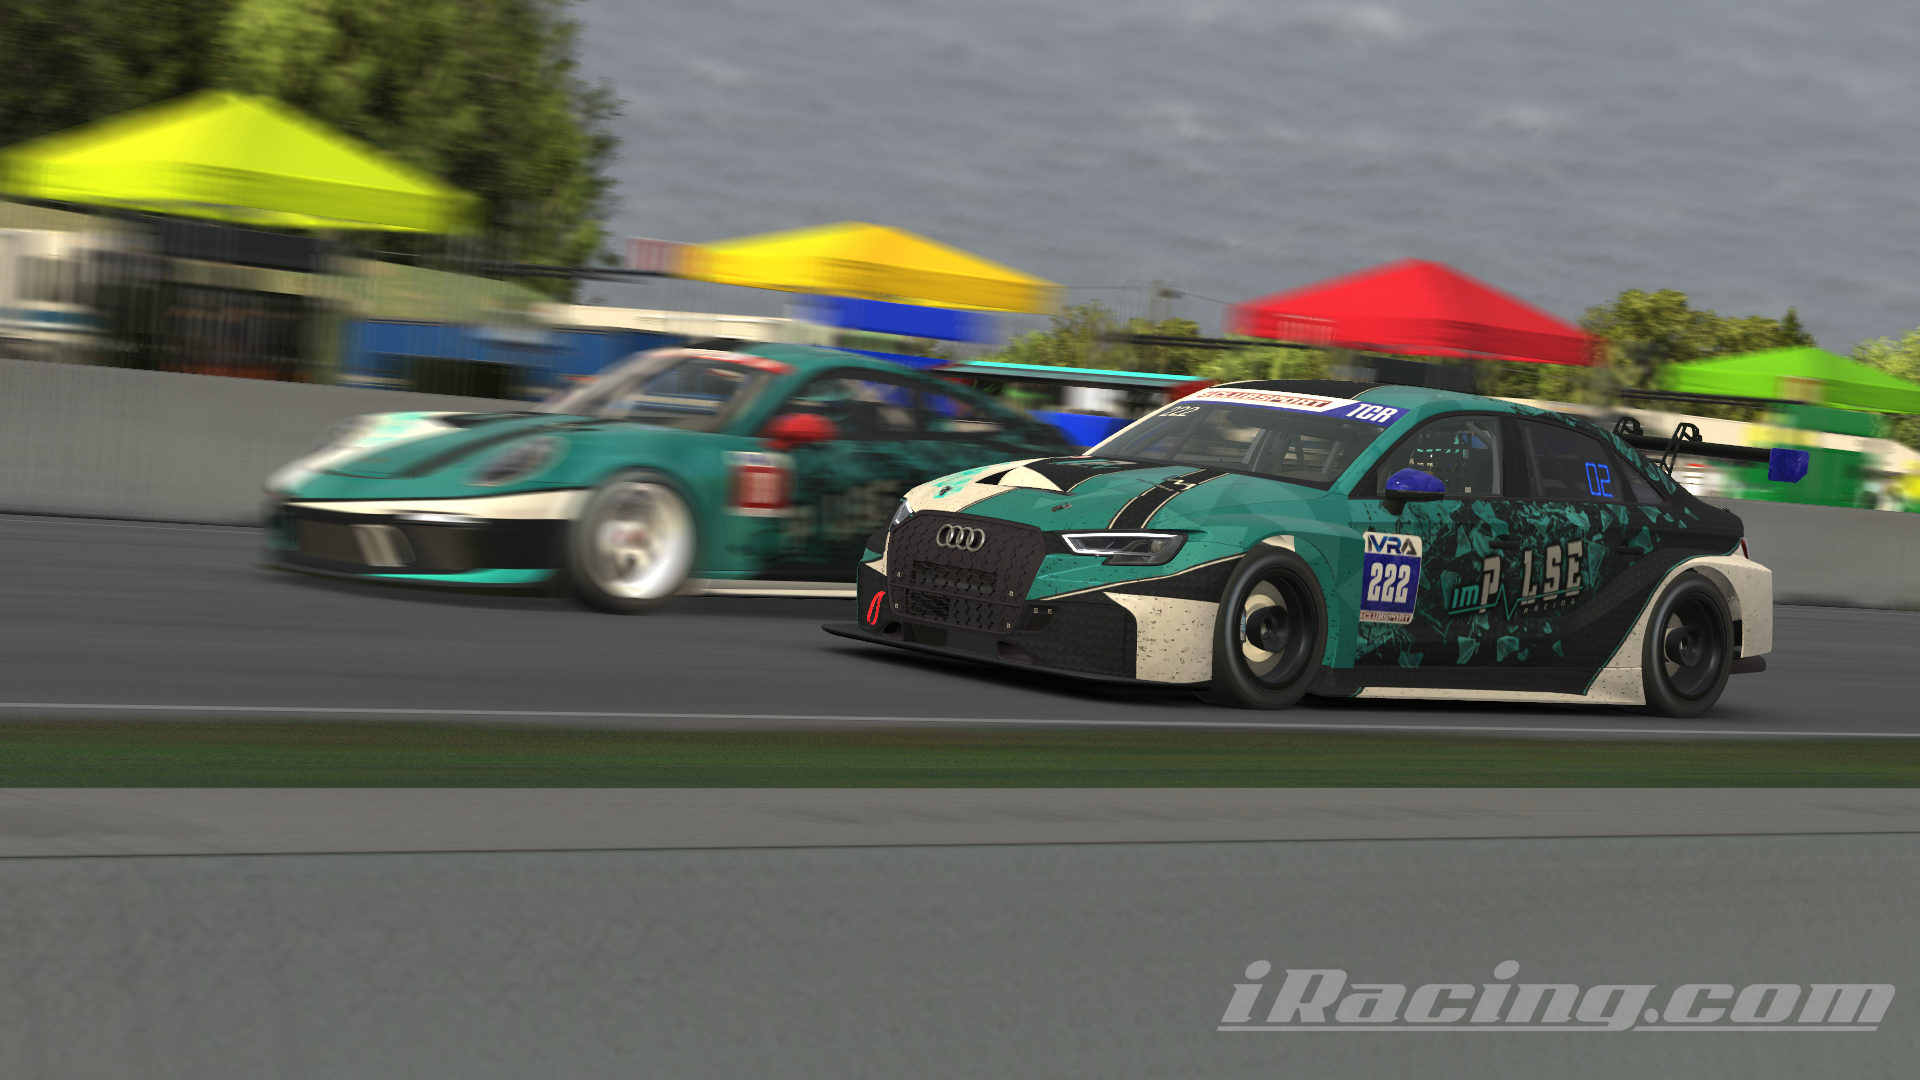 CUP pass on TCR Impulse